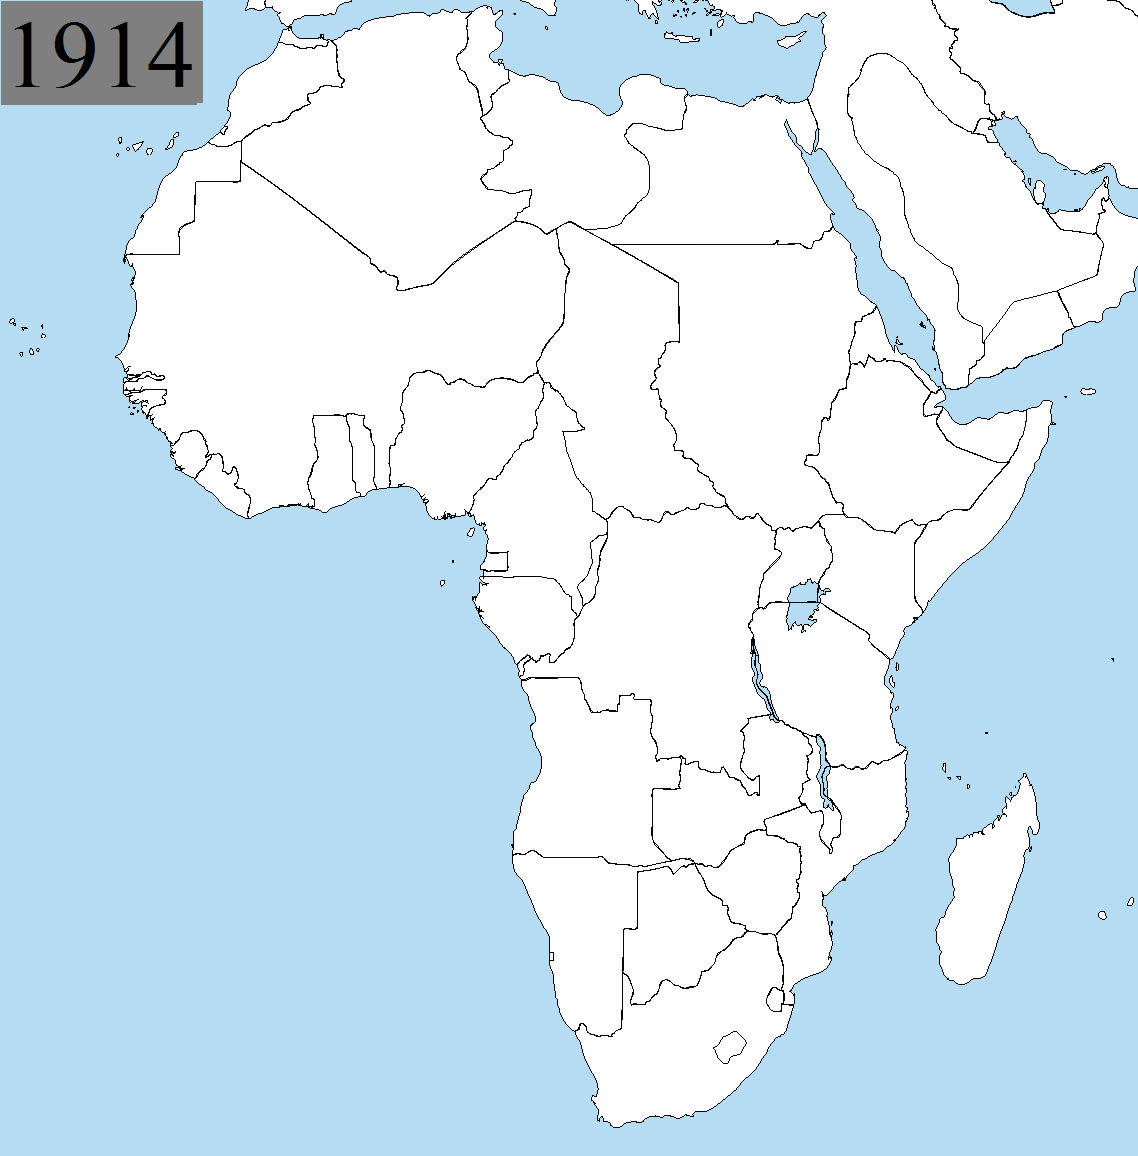 Africa1914.png